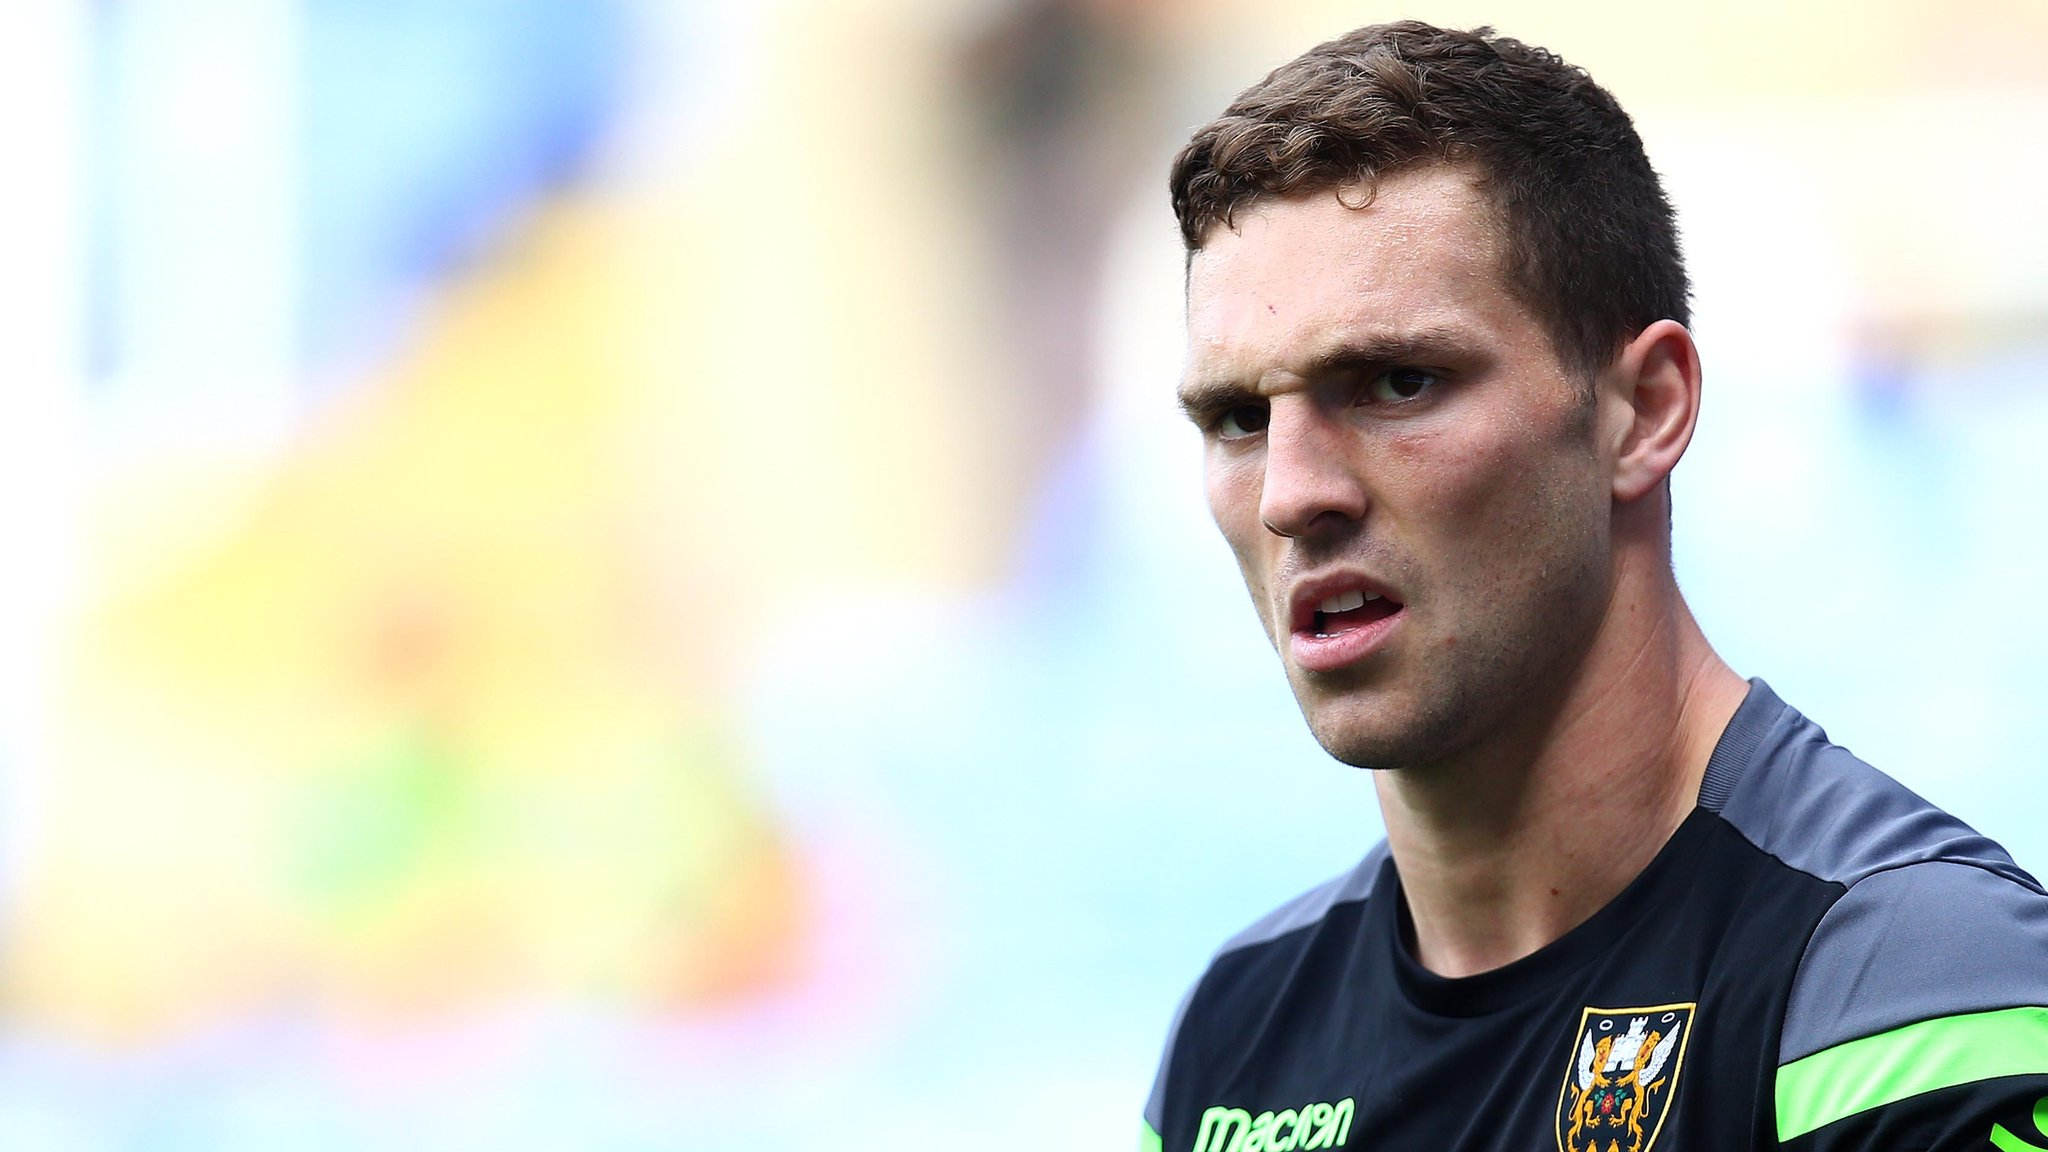 North to leave Northampton and return to Wales